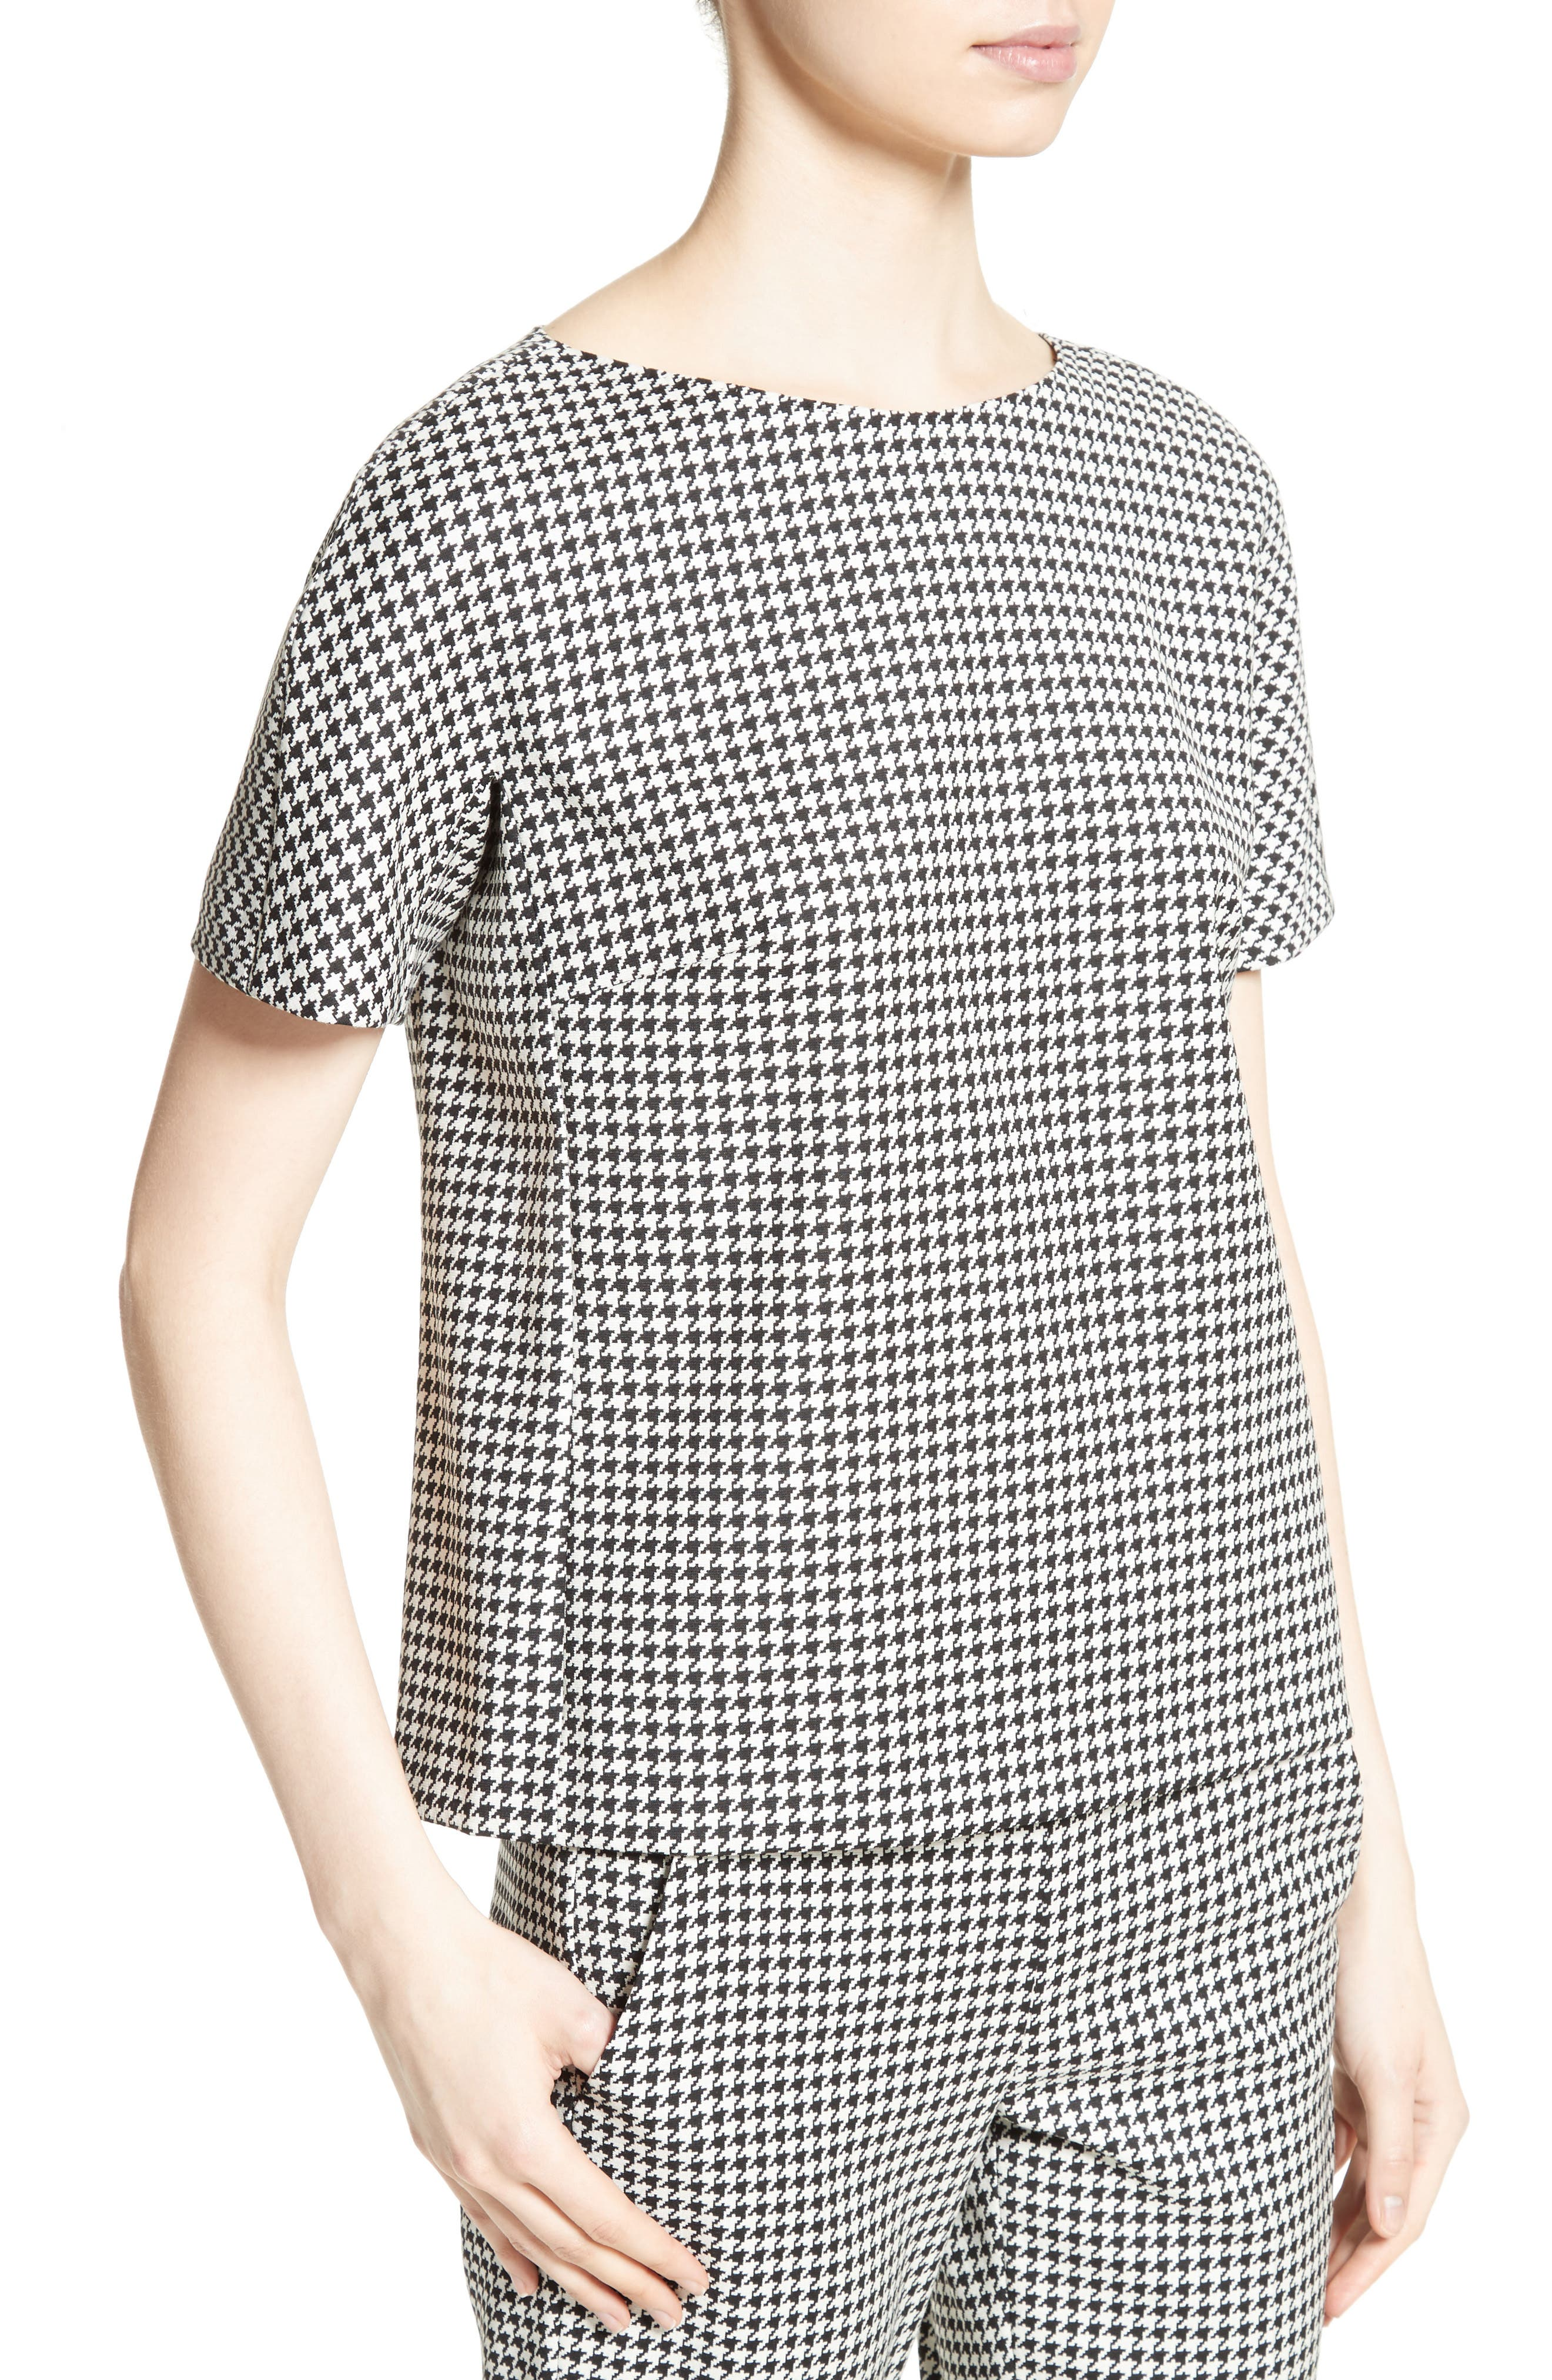 Ares Wool Blend Houndstooth Top,                             Alternate thumbnail 4, color,                             001